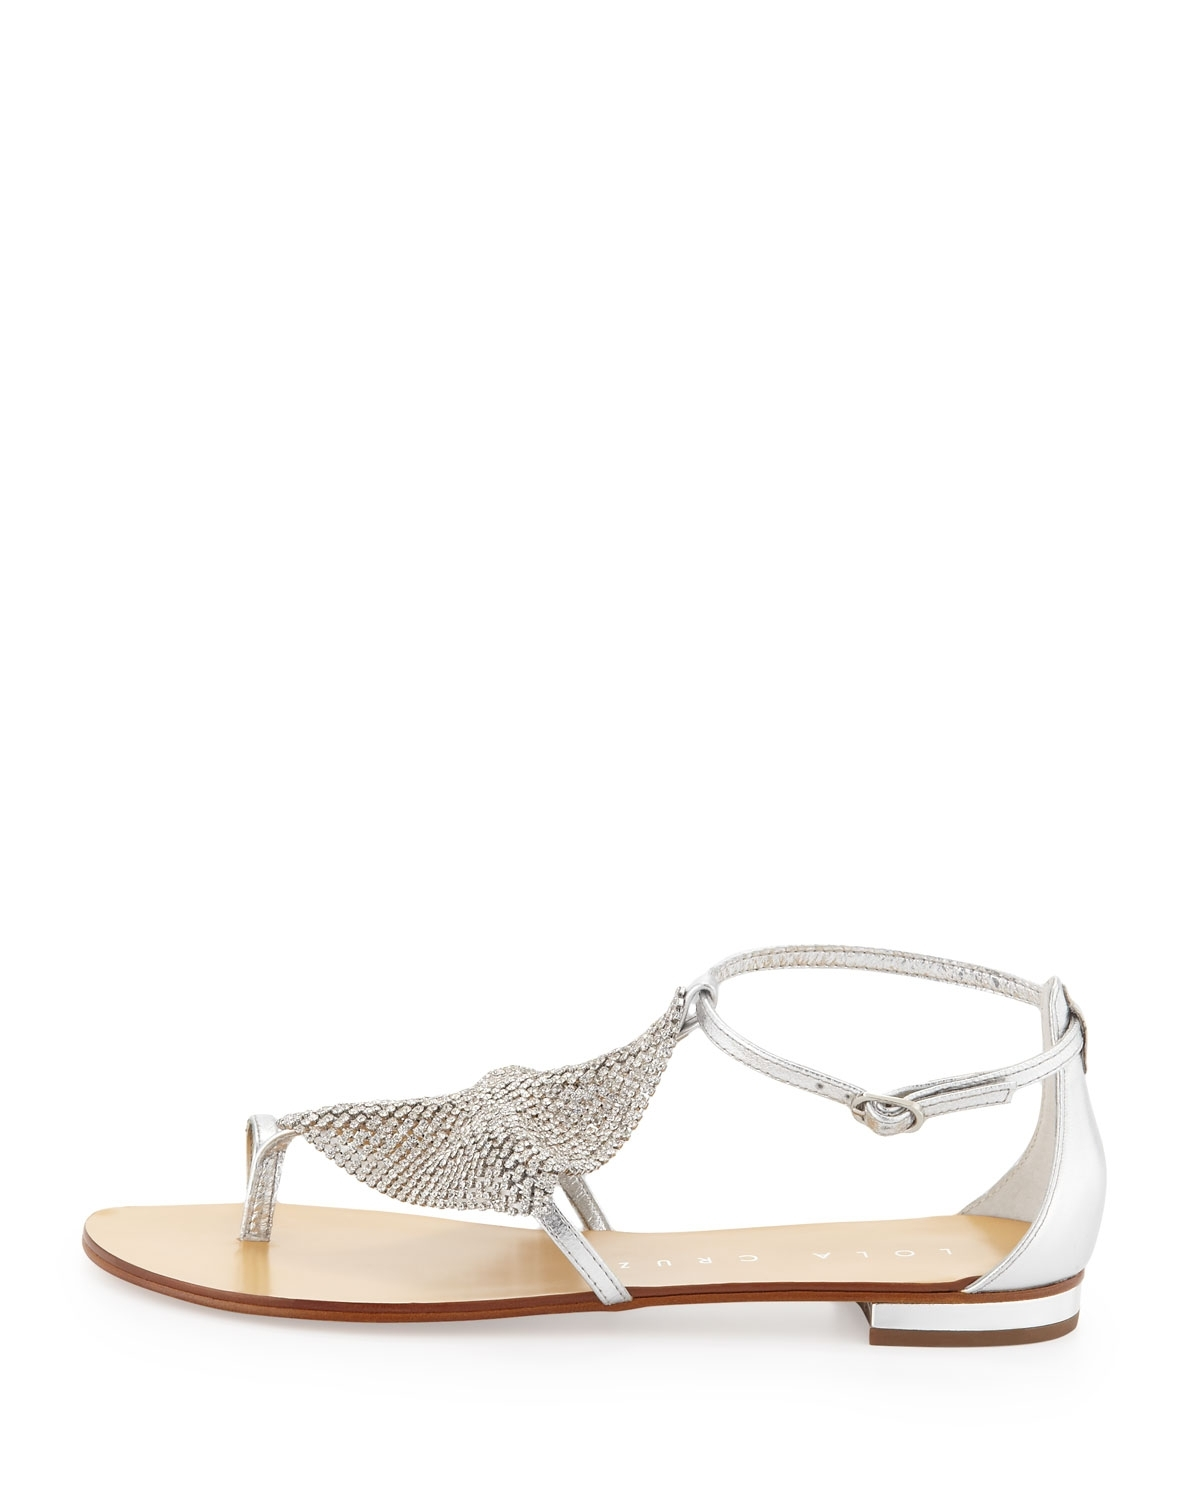 Lyst – Lola Cruz Rhinestone Mesh Toe Ring Sandal In Metallic Pertaining To Current Sandals Rhinestone Toe Rings (View 10 of 15)